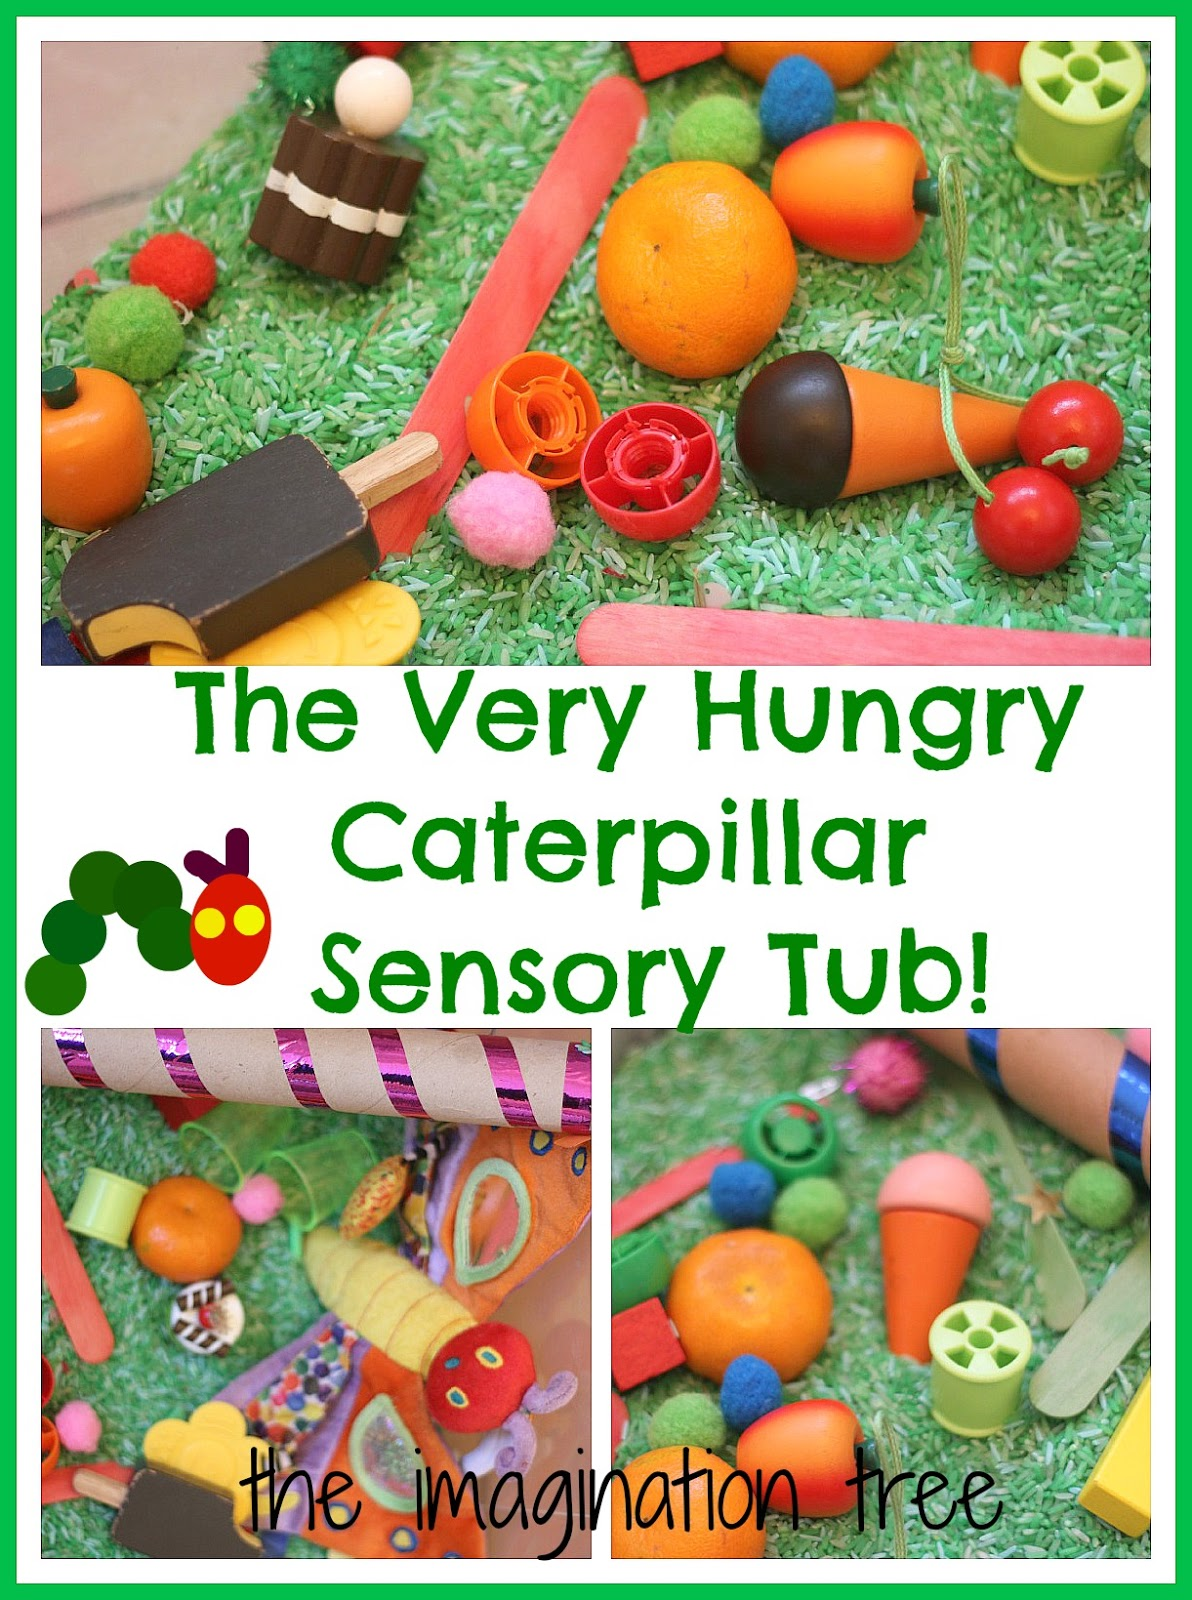 Life More Simply Diy The Very Hungry Caterpillar Day Activities Amp Inspiration